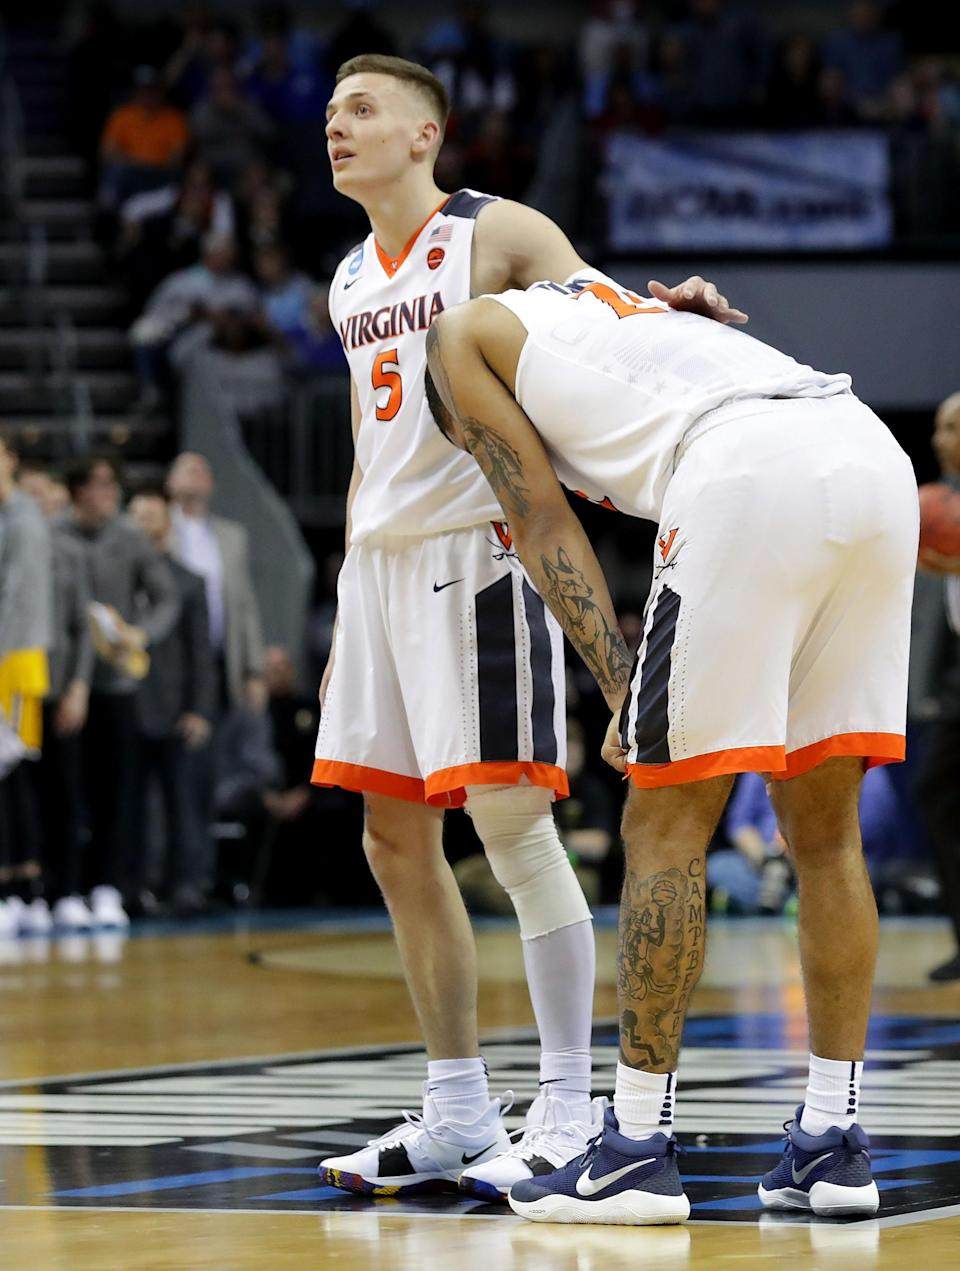 <p>Kyle Guy #5 and teammate Isaiah Wilkins #21 of the Virginia Cavaliers react to their 74-54 loss to the UMBC Retrievers during the first round of the 2018 NCAA Men's Basketball Tournament at Spectrum Center on March 16, 2018 in Charlotte, North Carolina. (Photo by Streeter Lecka/Getty Images) </p>